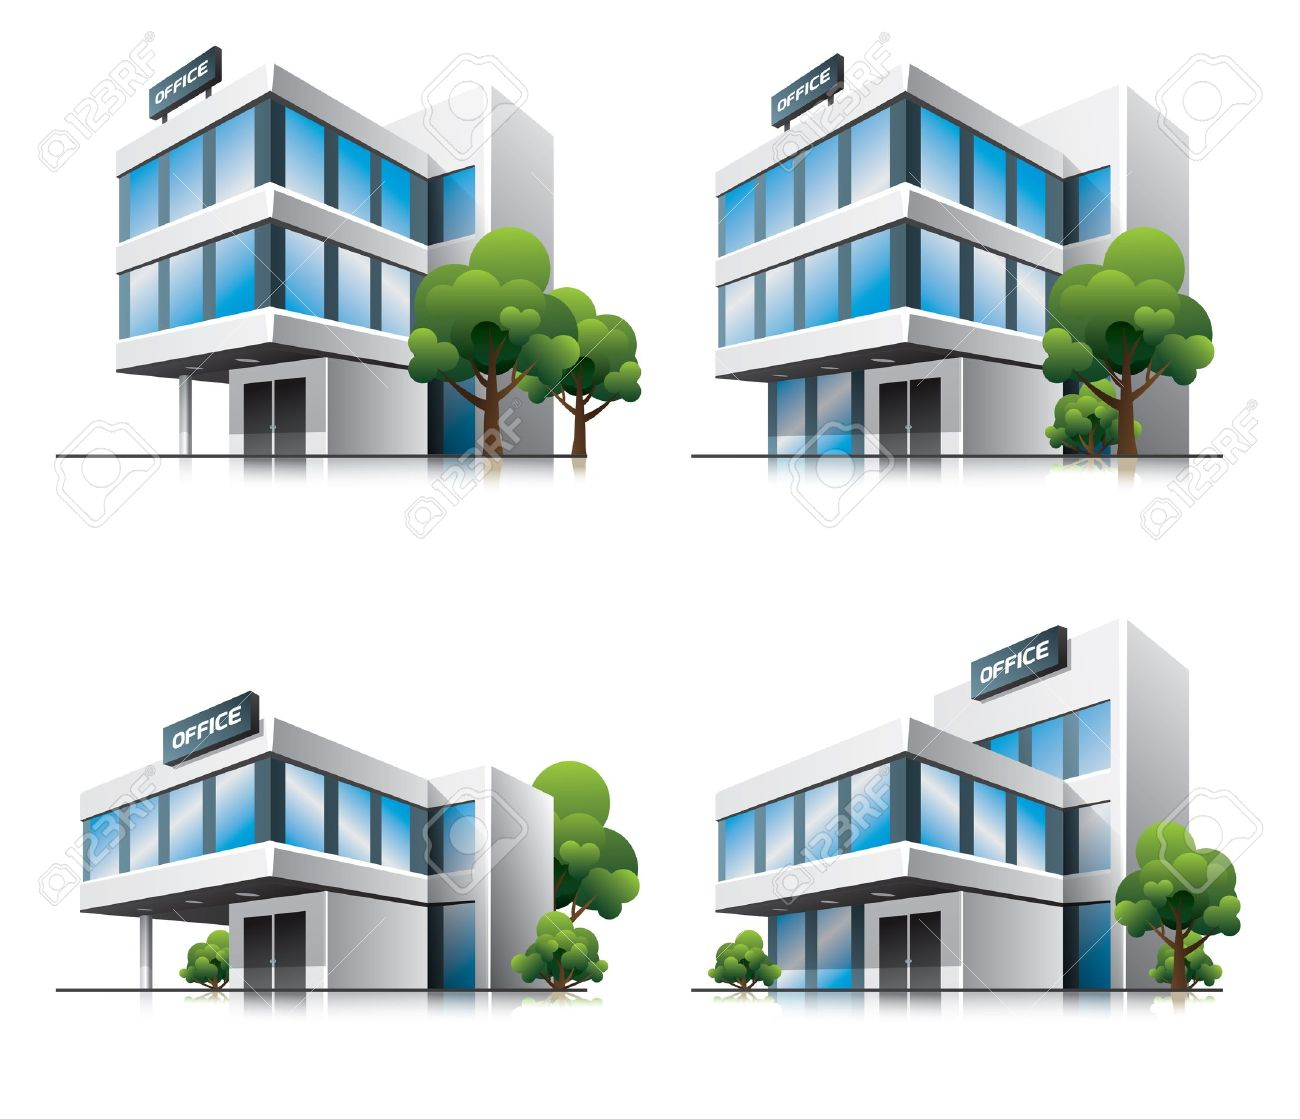 Four Cartoon Office Buildings With Trees Royalty Free Cliparts